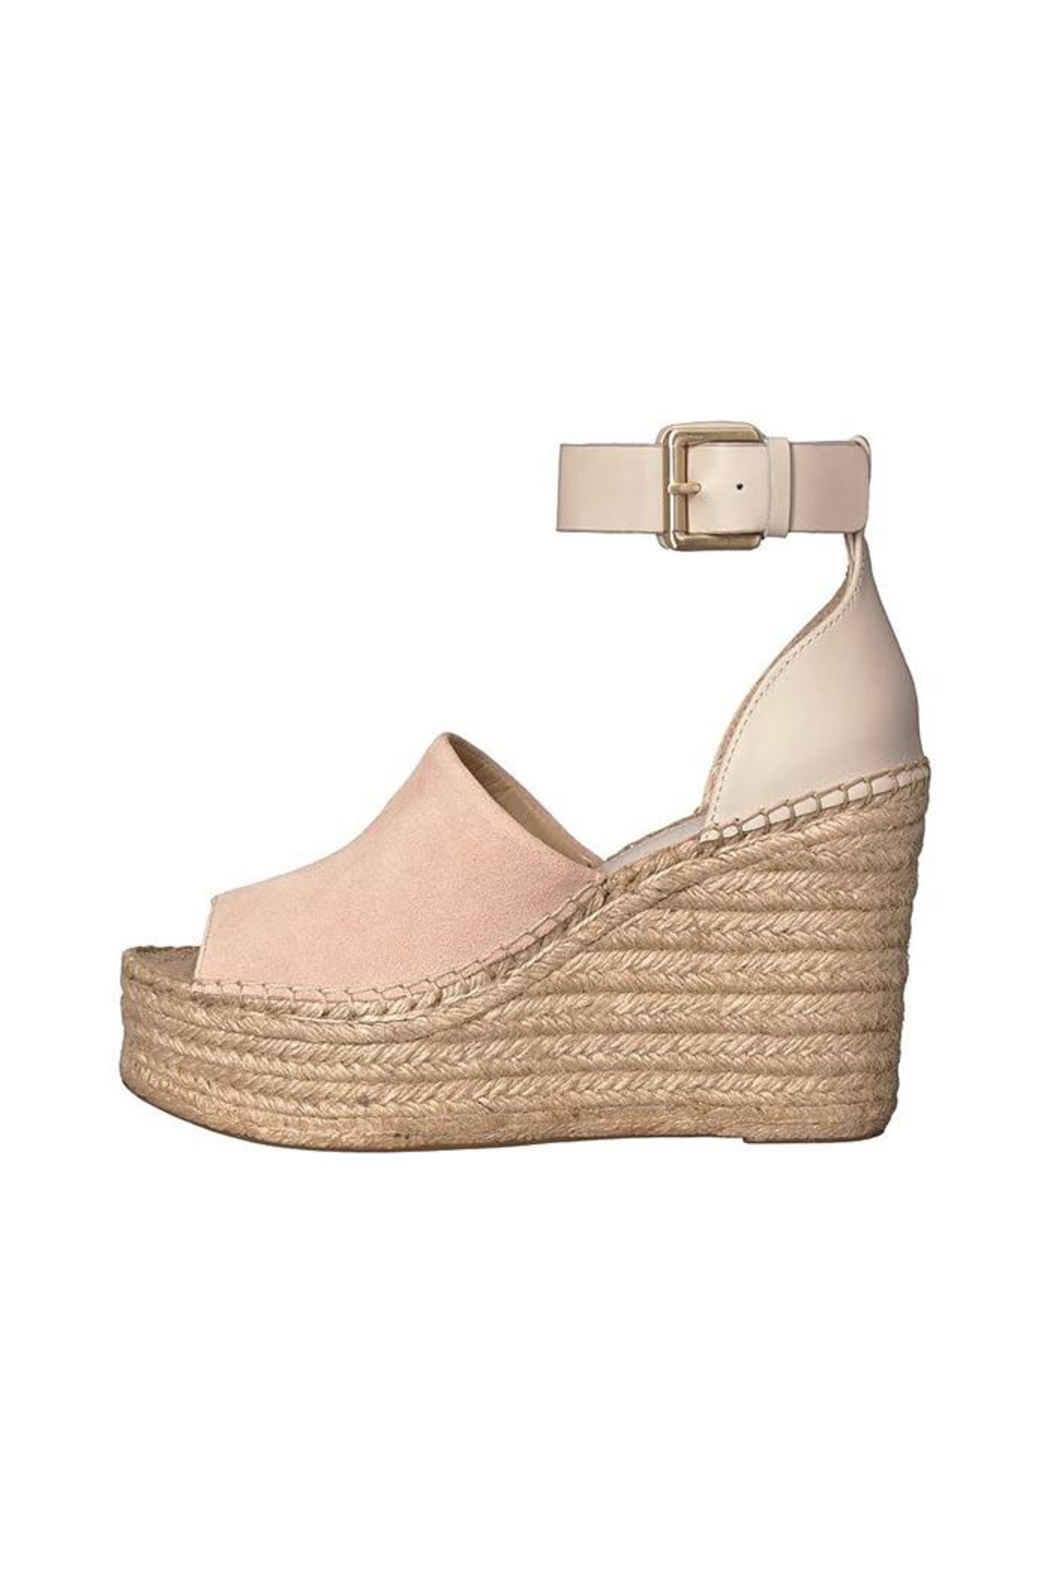 Marc Fisher LTD Adalyn Suede Wedge - Front Full Image